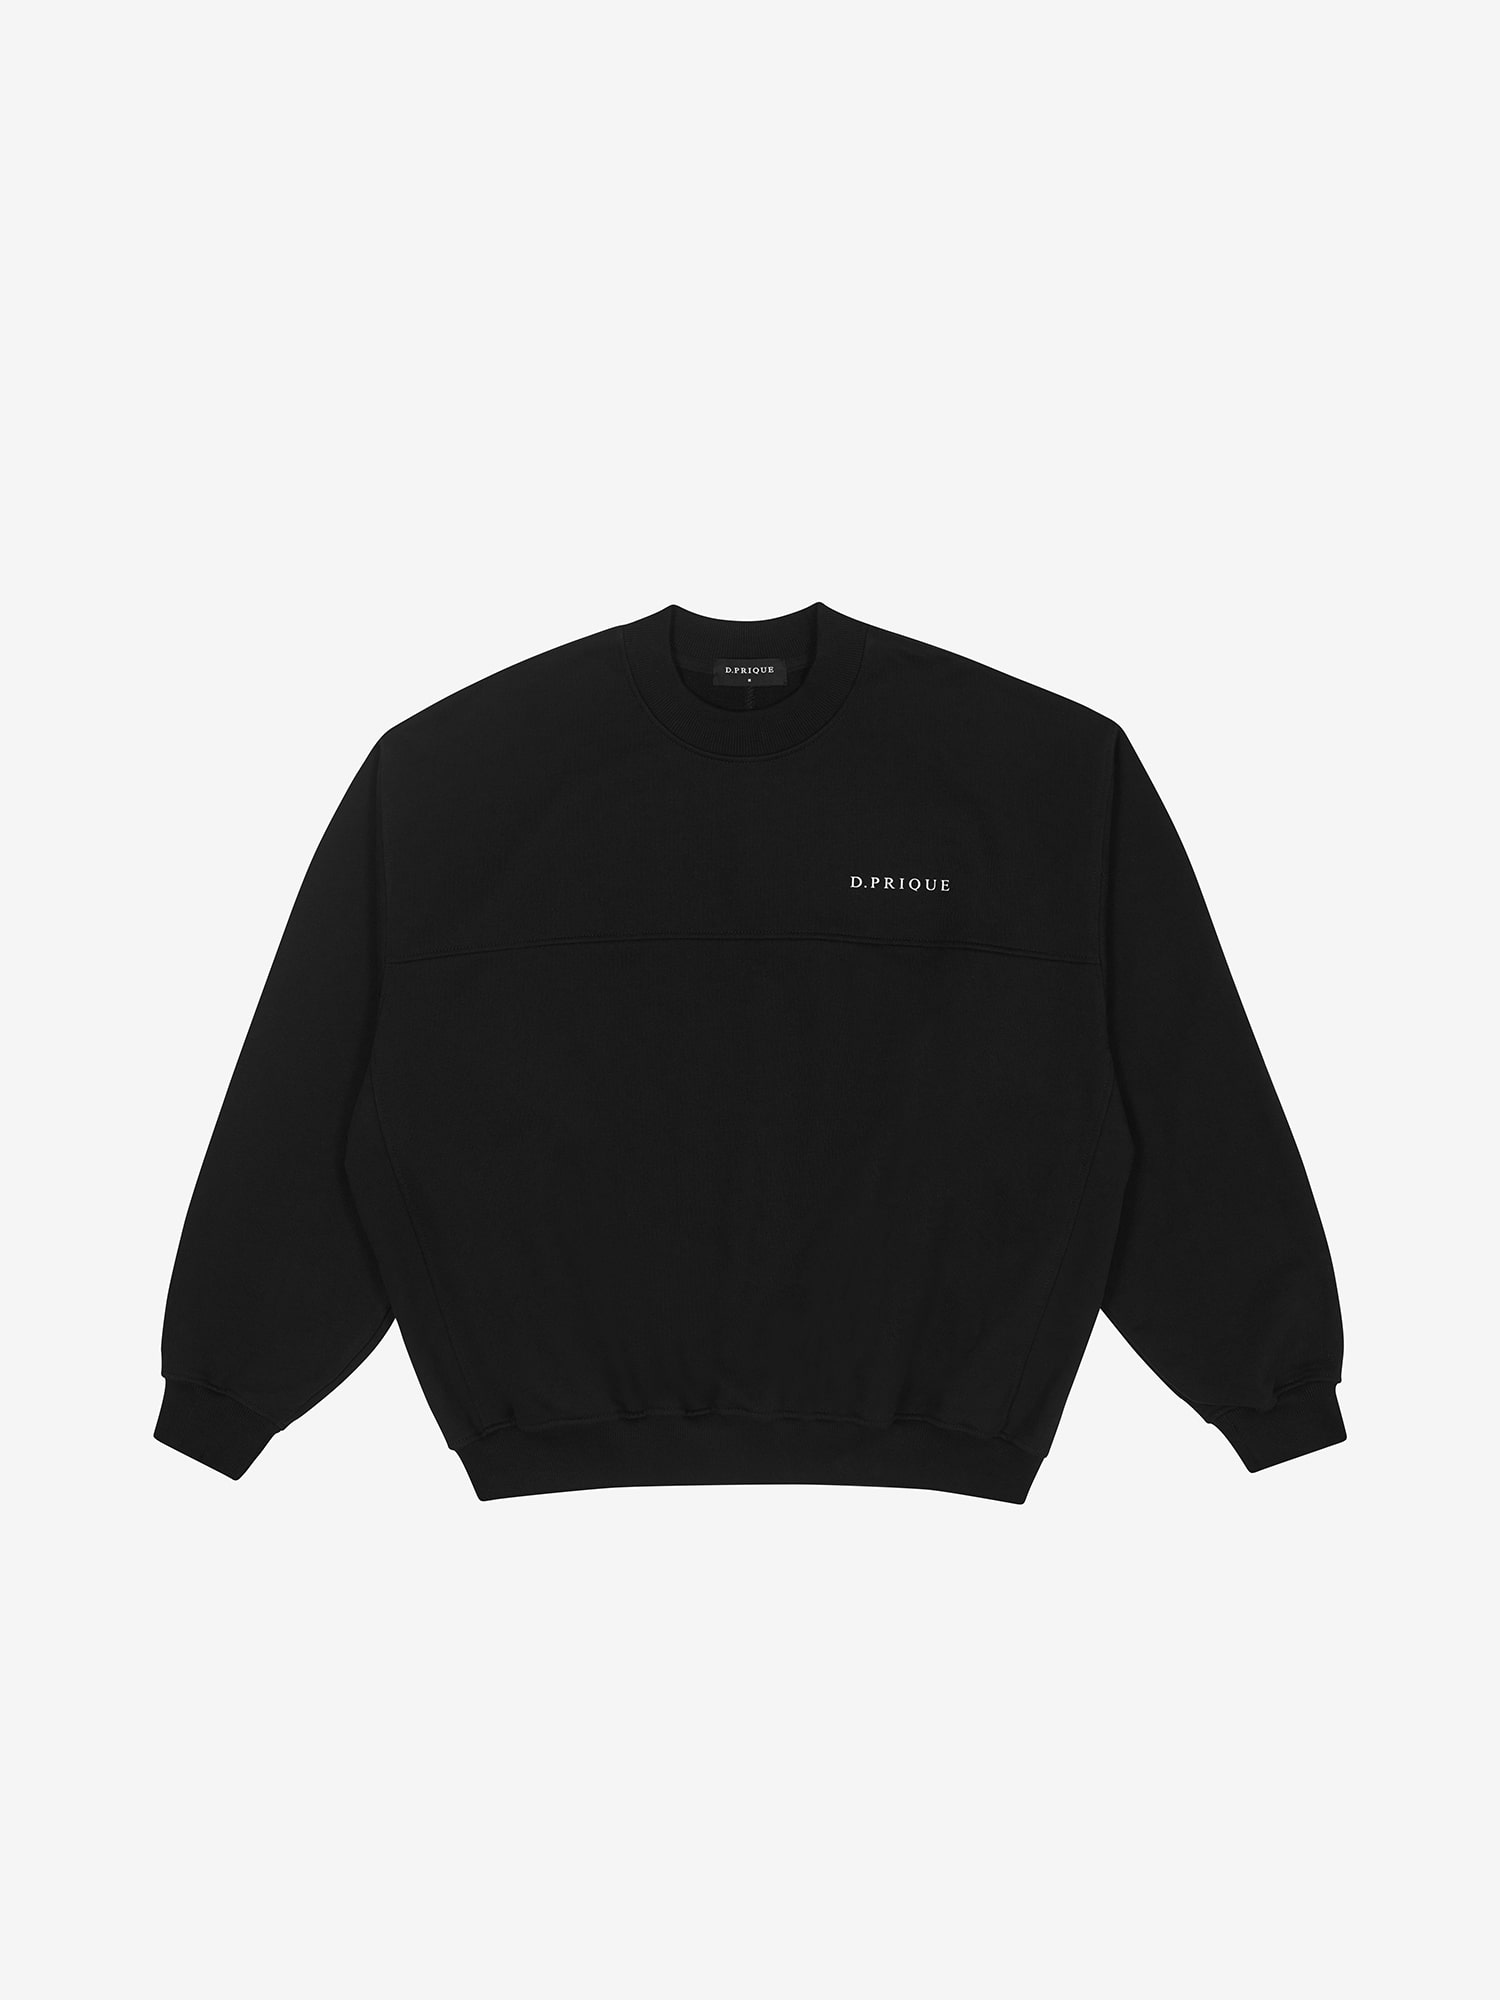 OVERSIZED LOGO SWEATSHIRT - BLACK